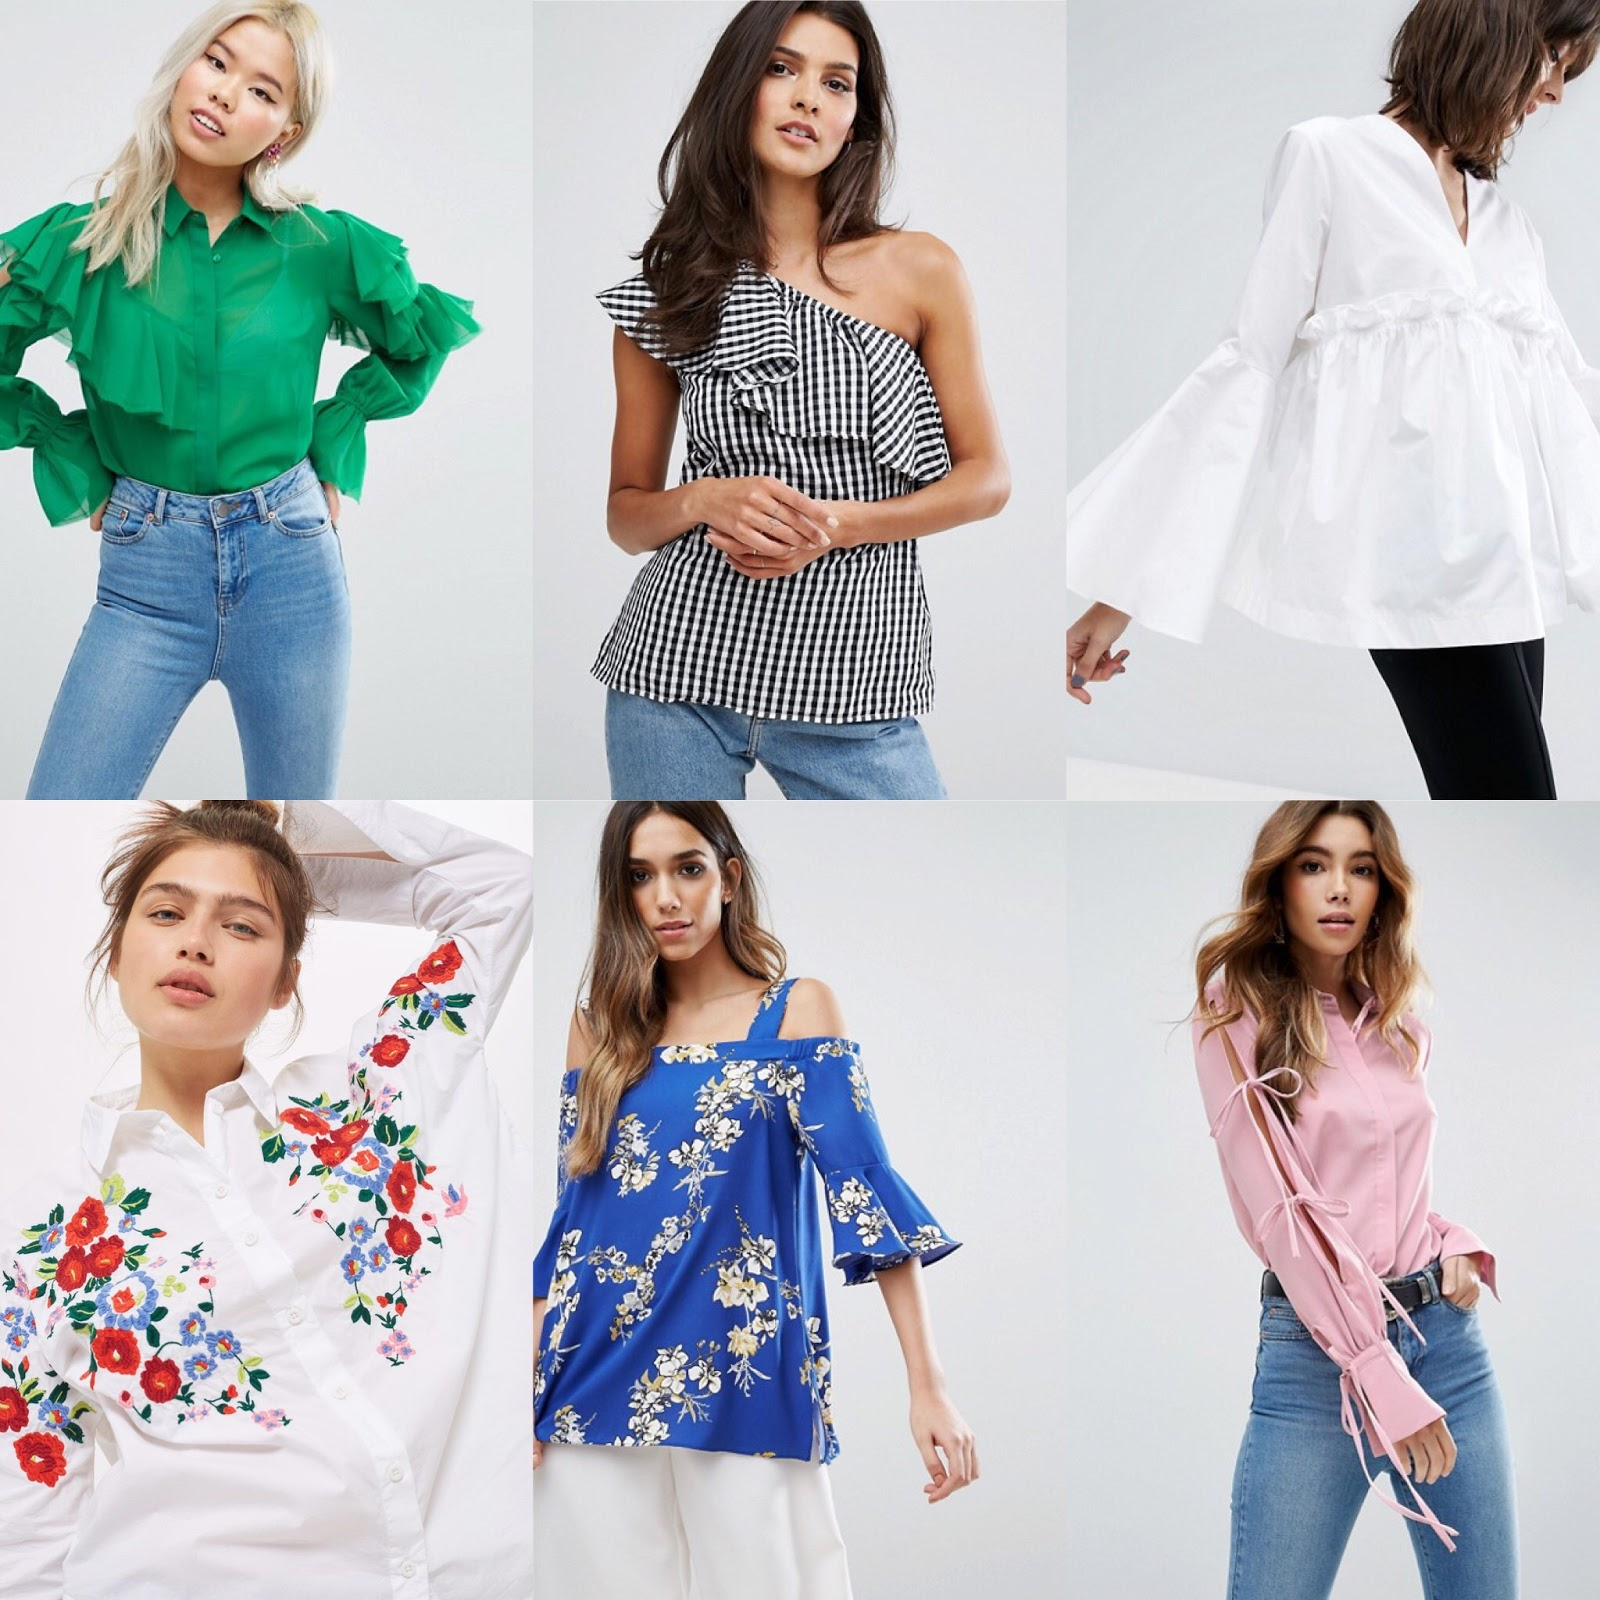 Fashion style Trend Trendsspring ruffled blouses for girls